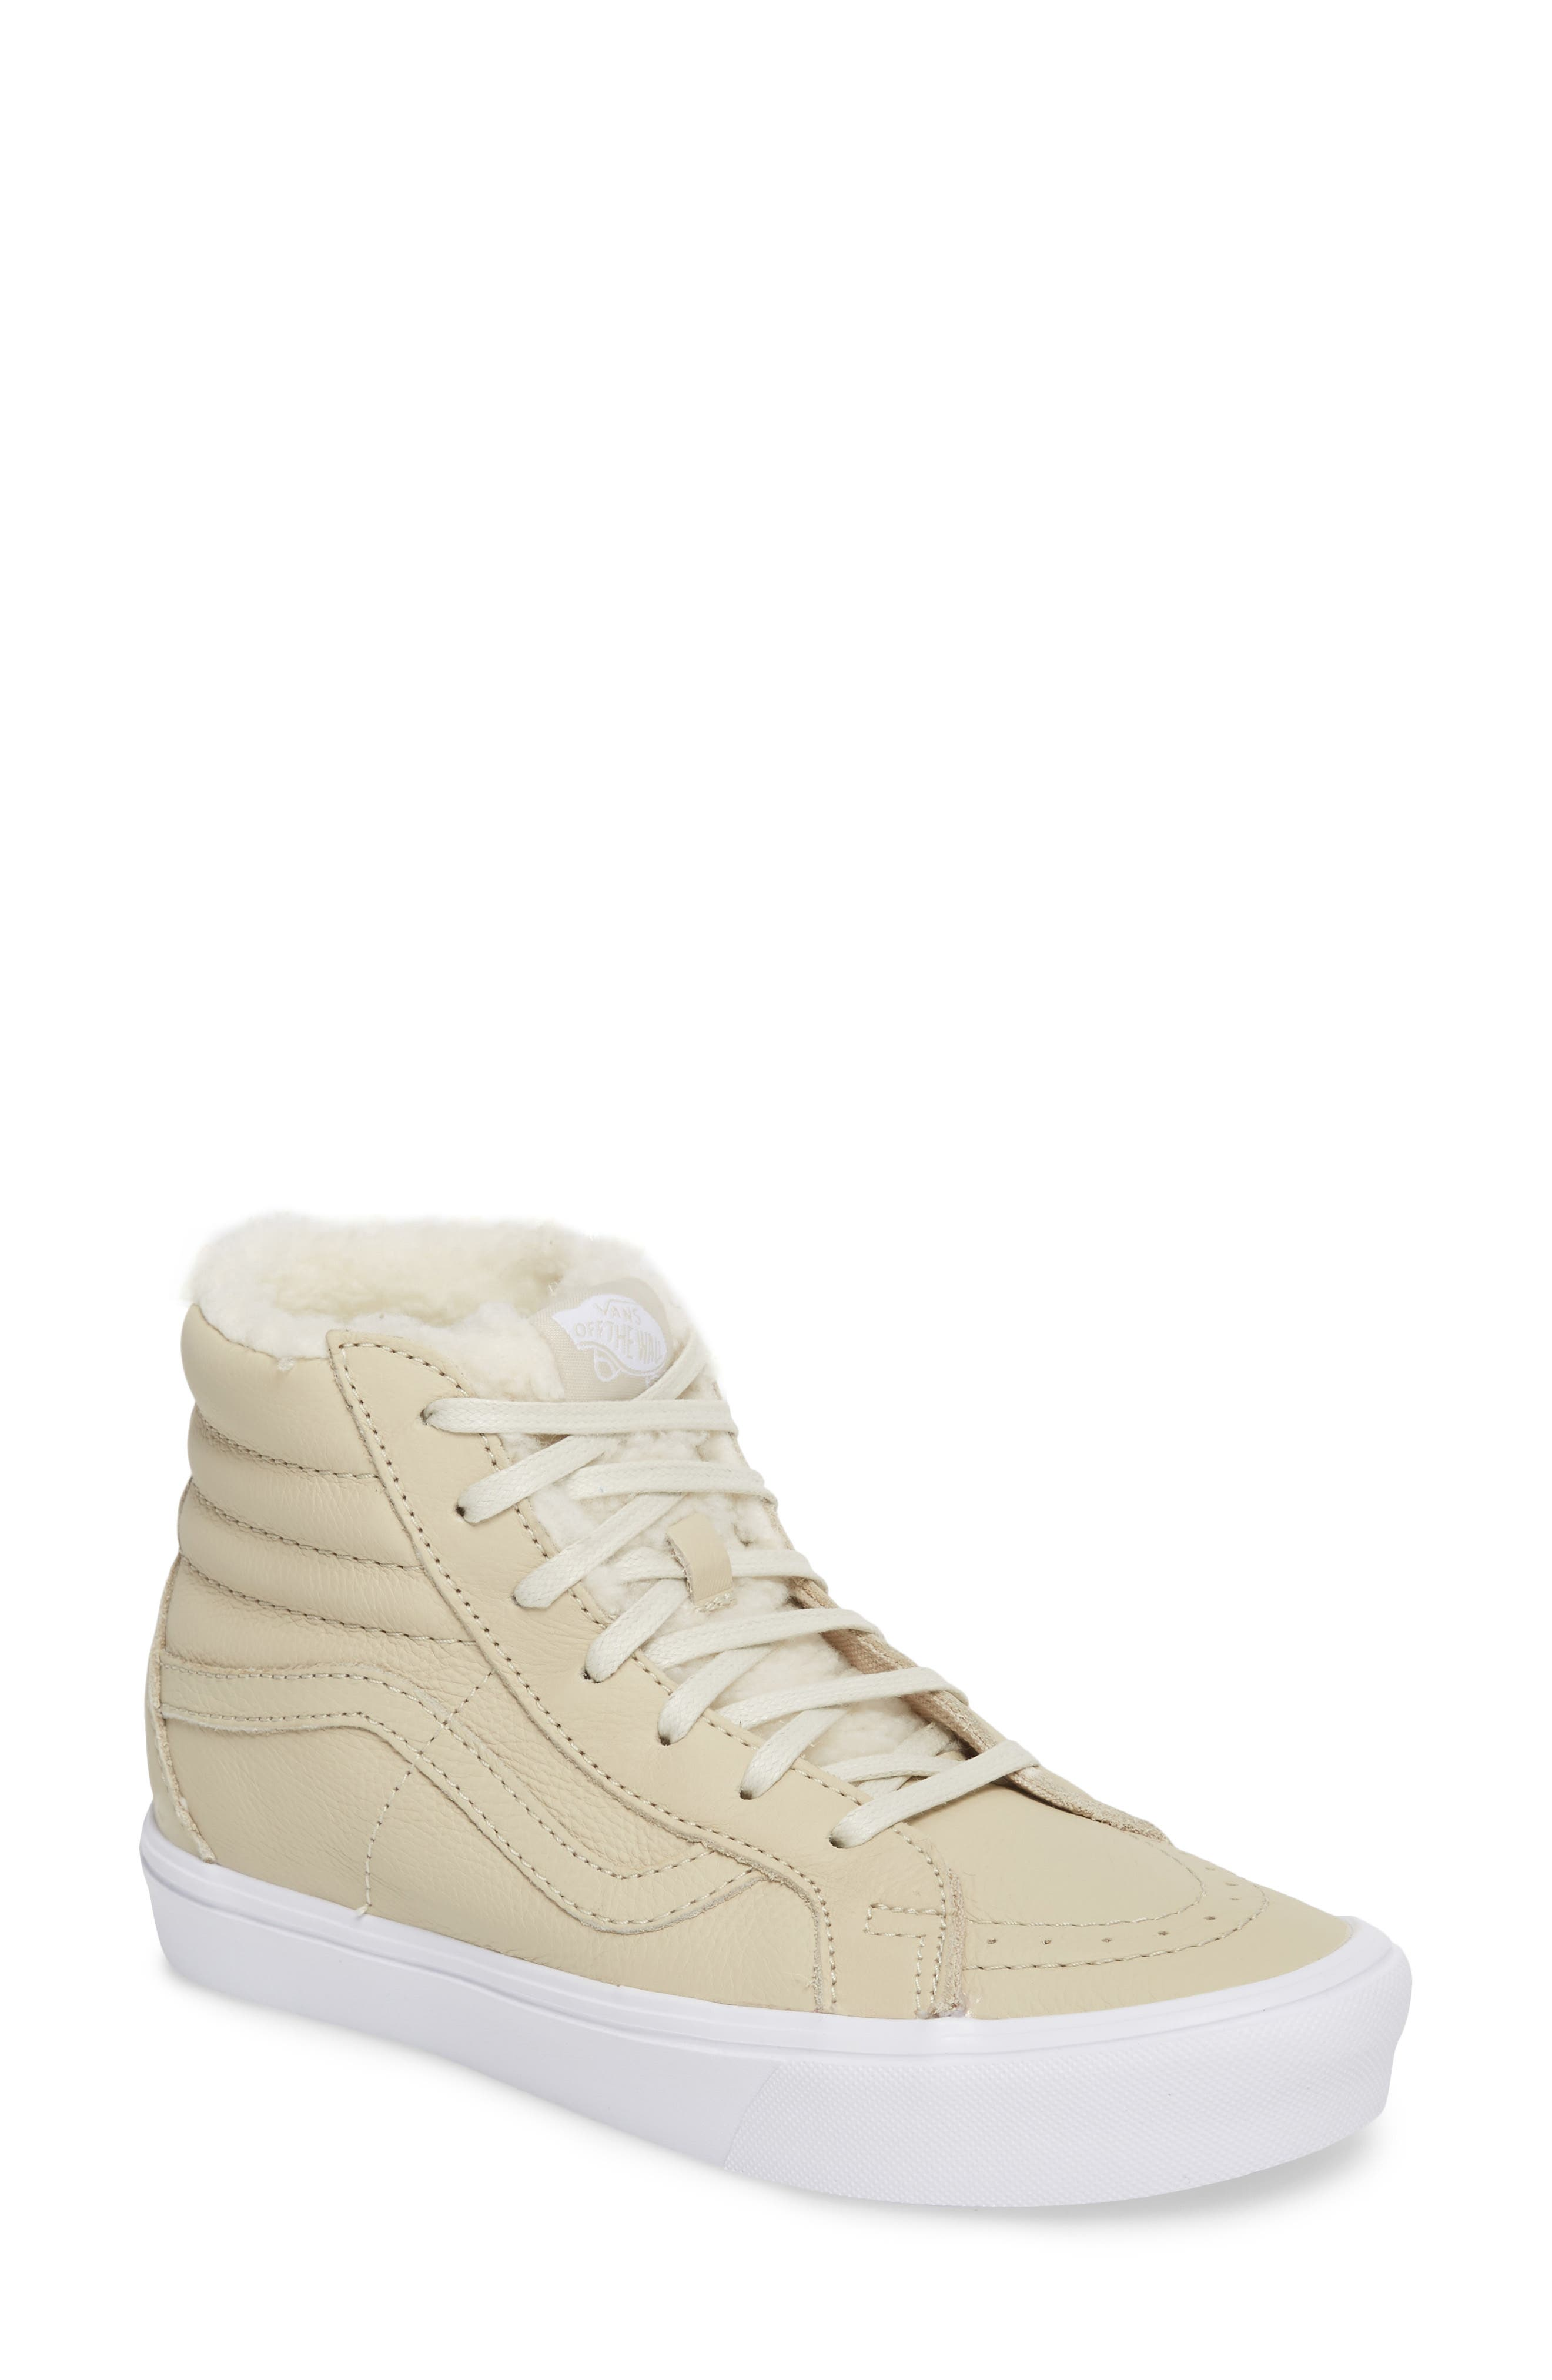 7753174c32fe82 VANS SK8-HI REISSUE LITE HIGH TOP SNEAKER